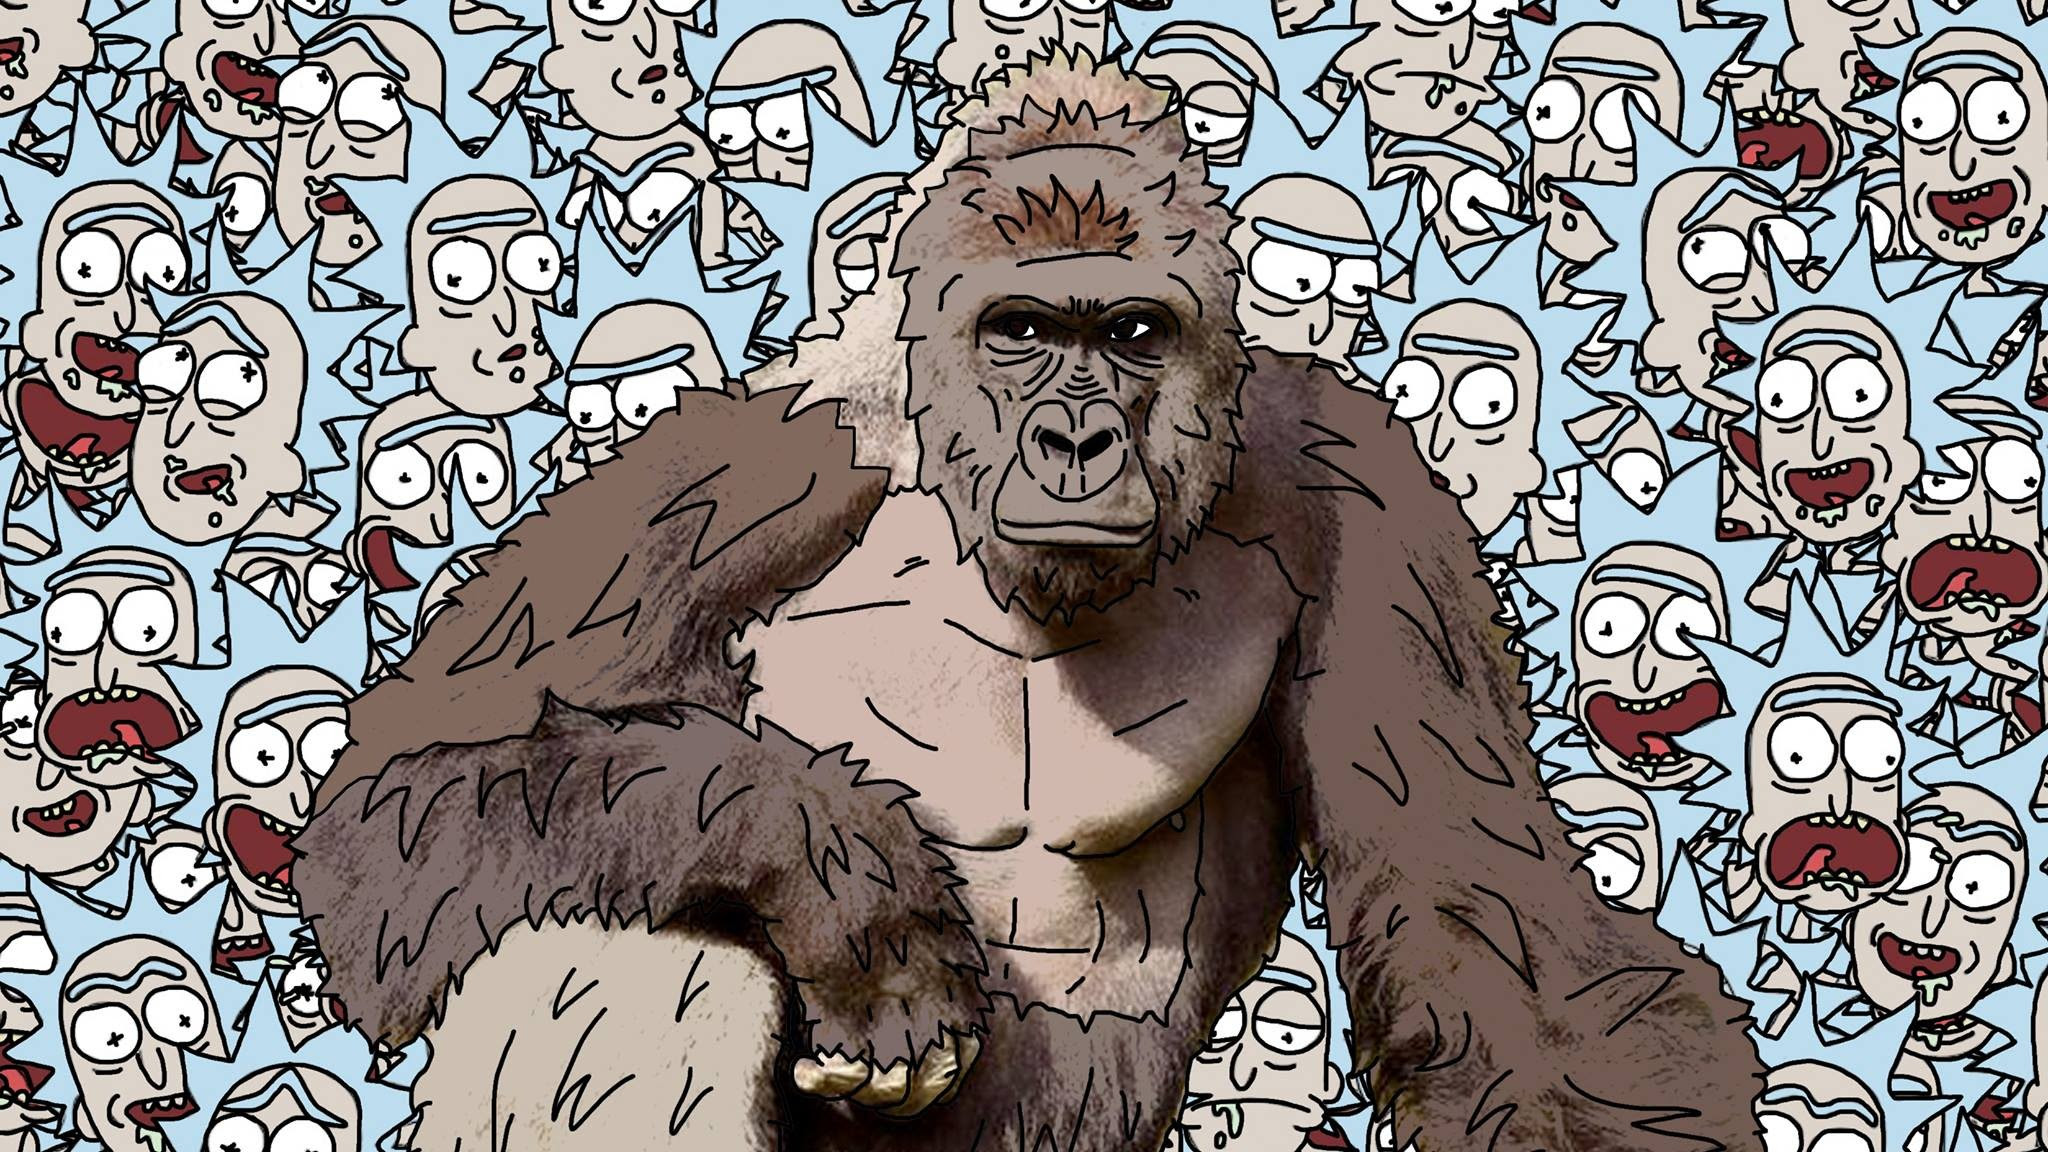 Download Wallpapers Download 2560x1440 2048x1152 Px Harambe Rick